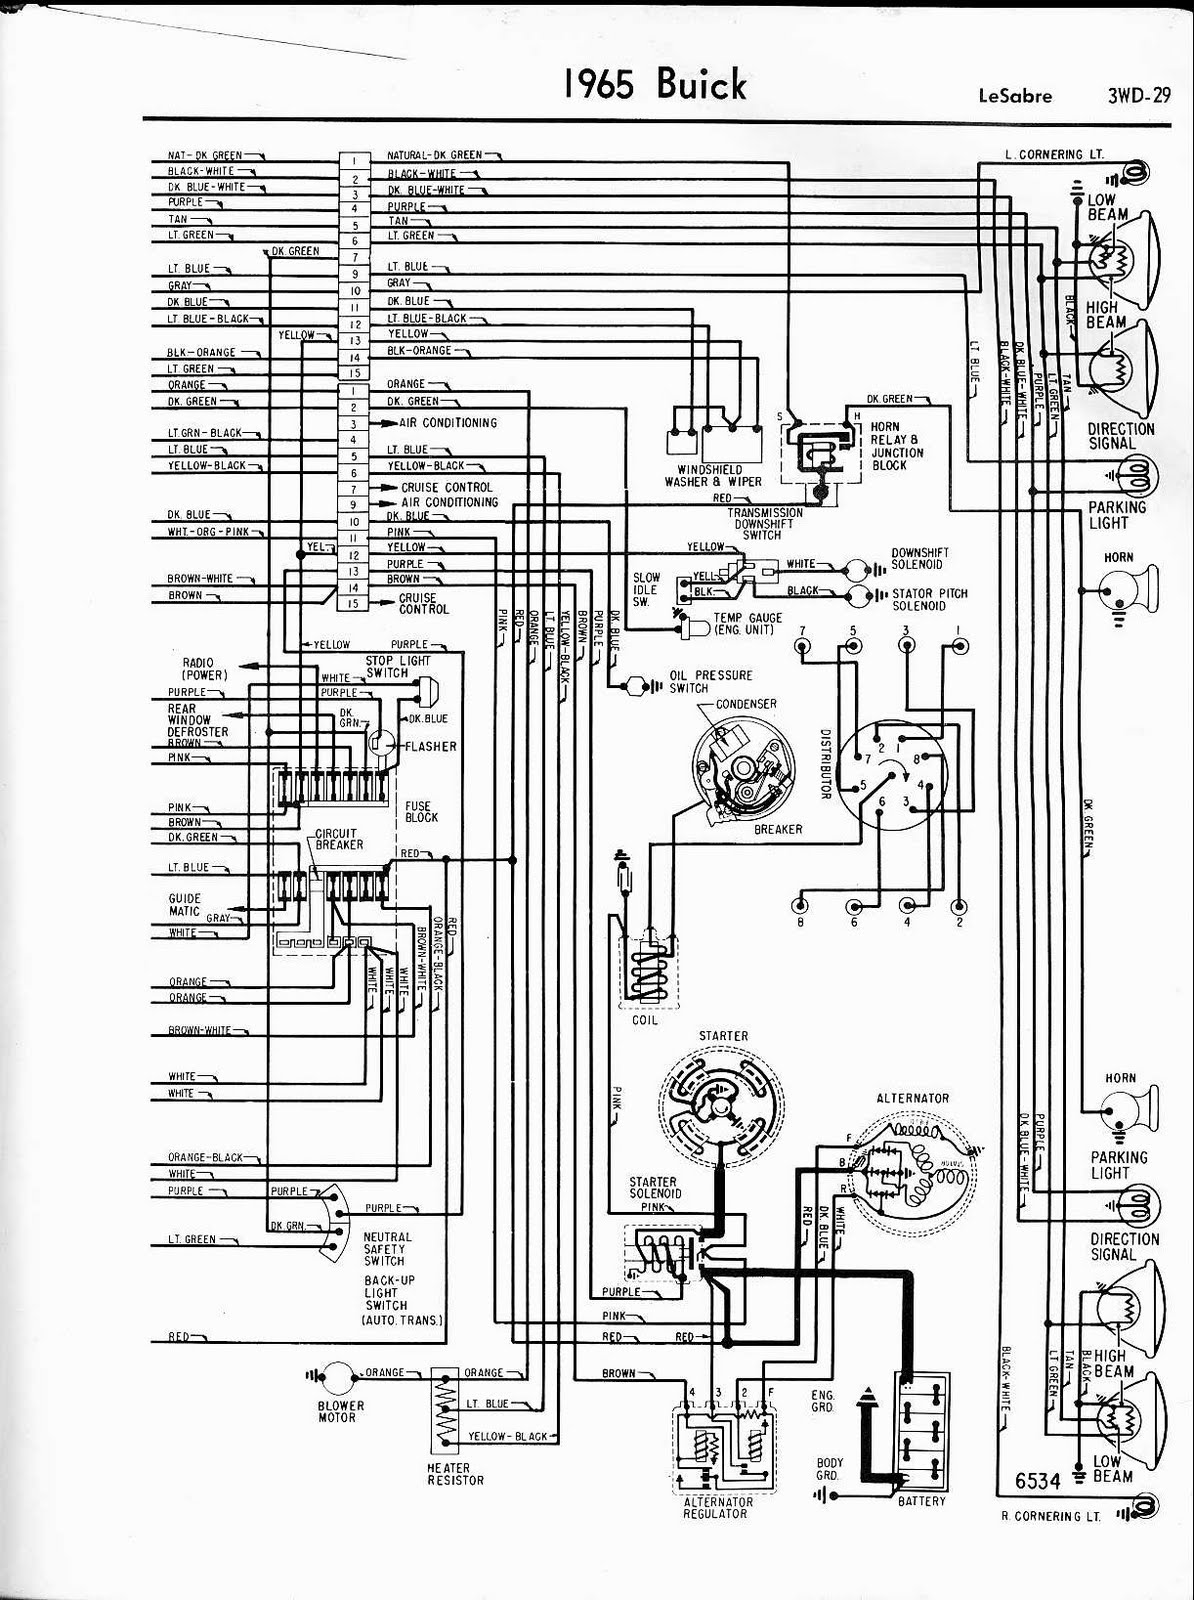 diagram] 2001 2002 buick lesabre wiring diagram full version hd quality wiring  diagram - misstransmission.biogenic.fr  diagram database - biogenic